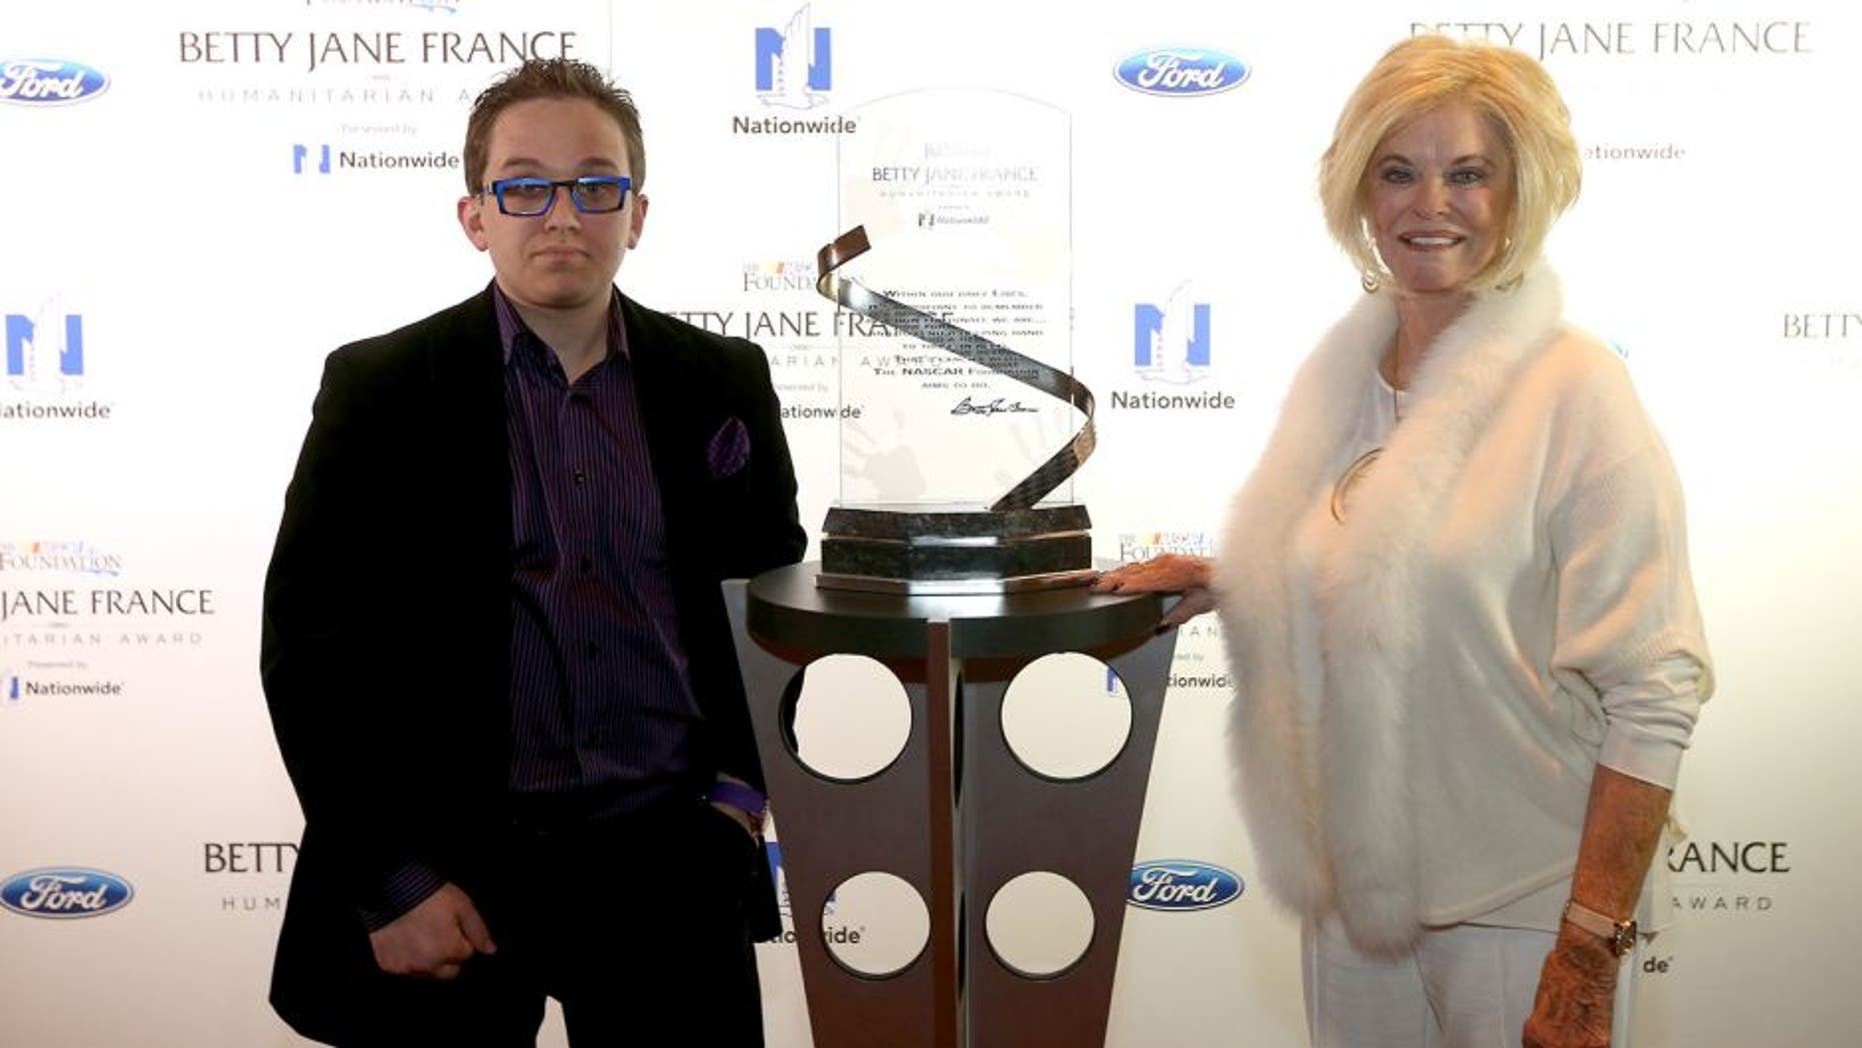 LAS VEGAS, NV - DECEMBER 02: Betty Jane France poses with Jeff Hanson of Overland Park, Kansas, who represents the Children's Tumor Foundation, during the Betty Jane France Humanitarian Award Reception inside Wynn Las Vegas during NASCAR Champion's Week on December 2, 2015 in Las Vegas, Nevada. (Photo by Chris Graythen/NASCAR via Getty Images)